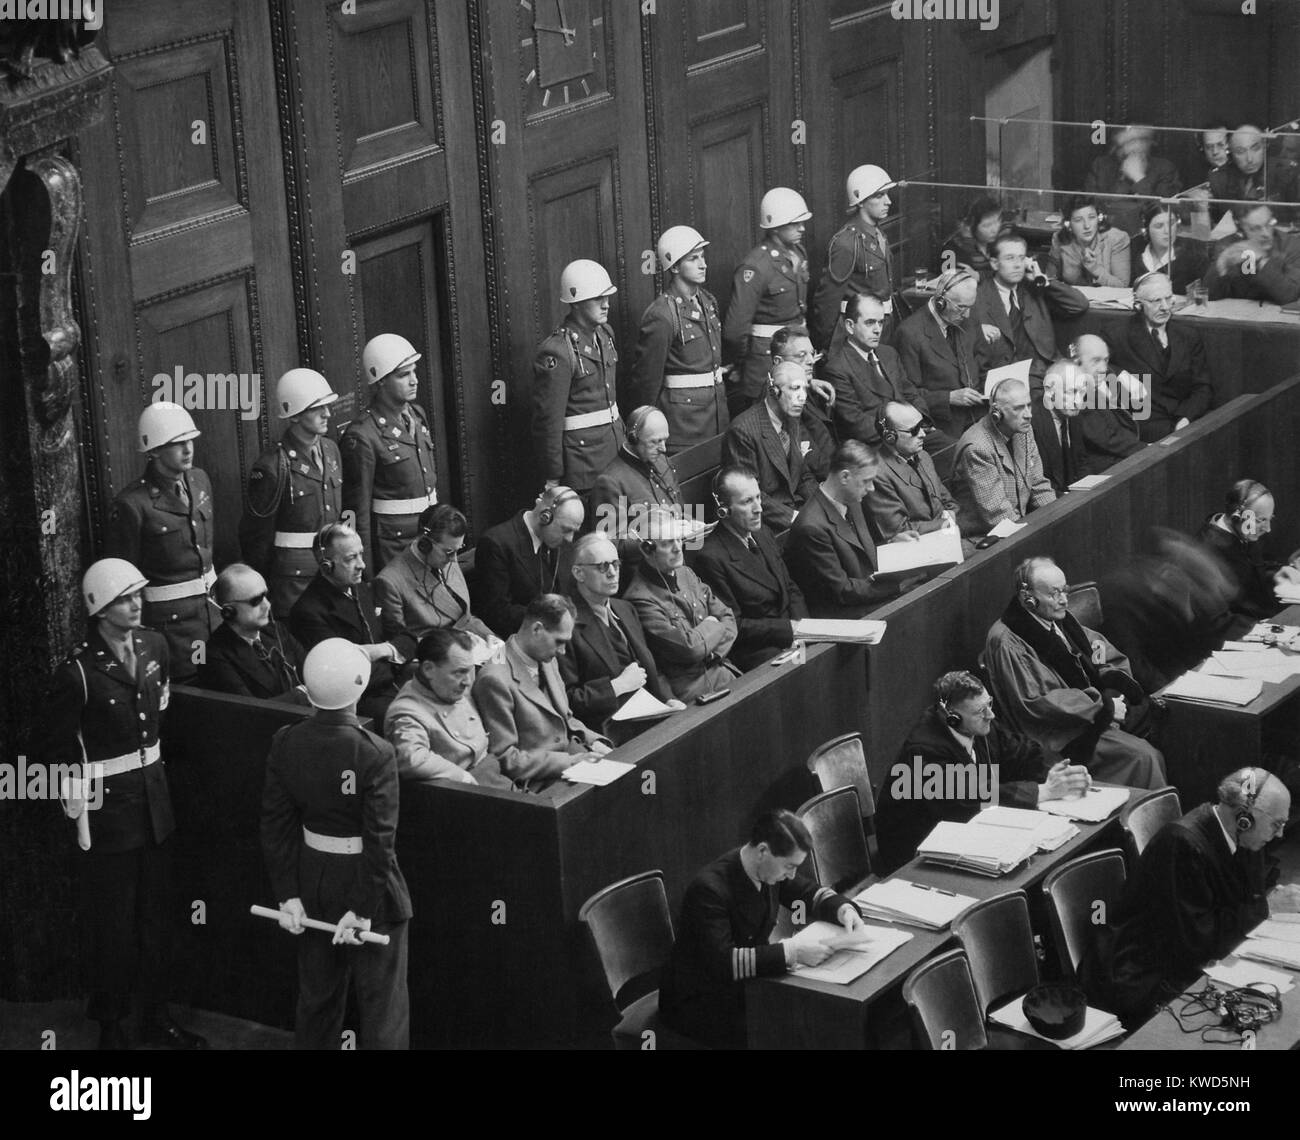 Former Nazi Germany's military and political leaders on trial at Nuremberg. They were prosecuted for waging - Stock Image